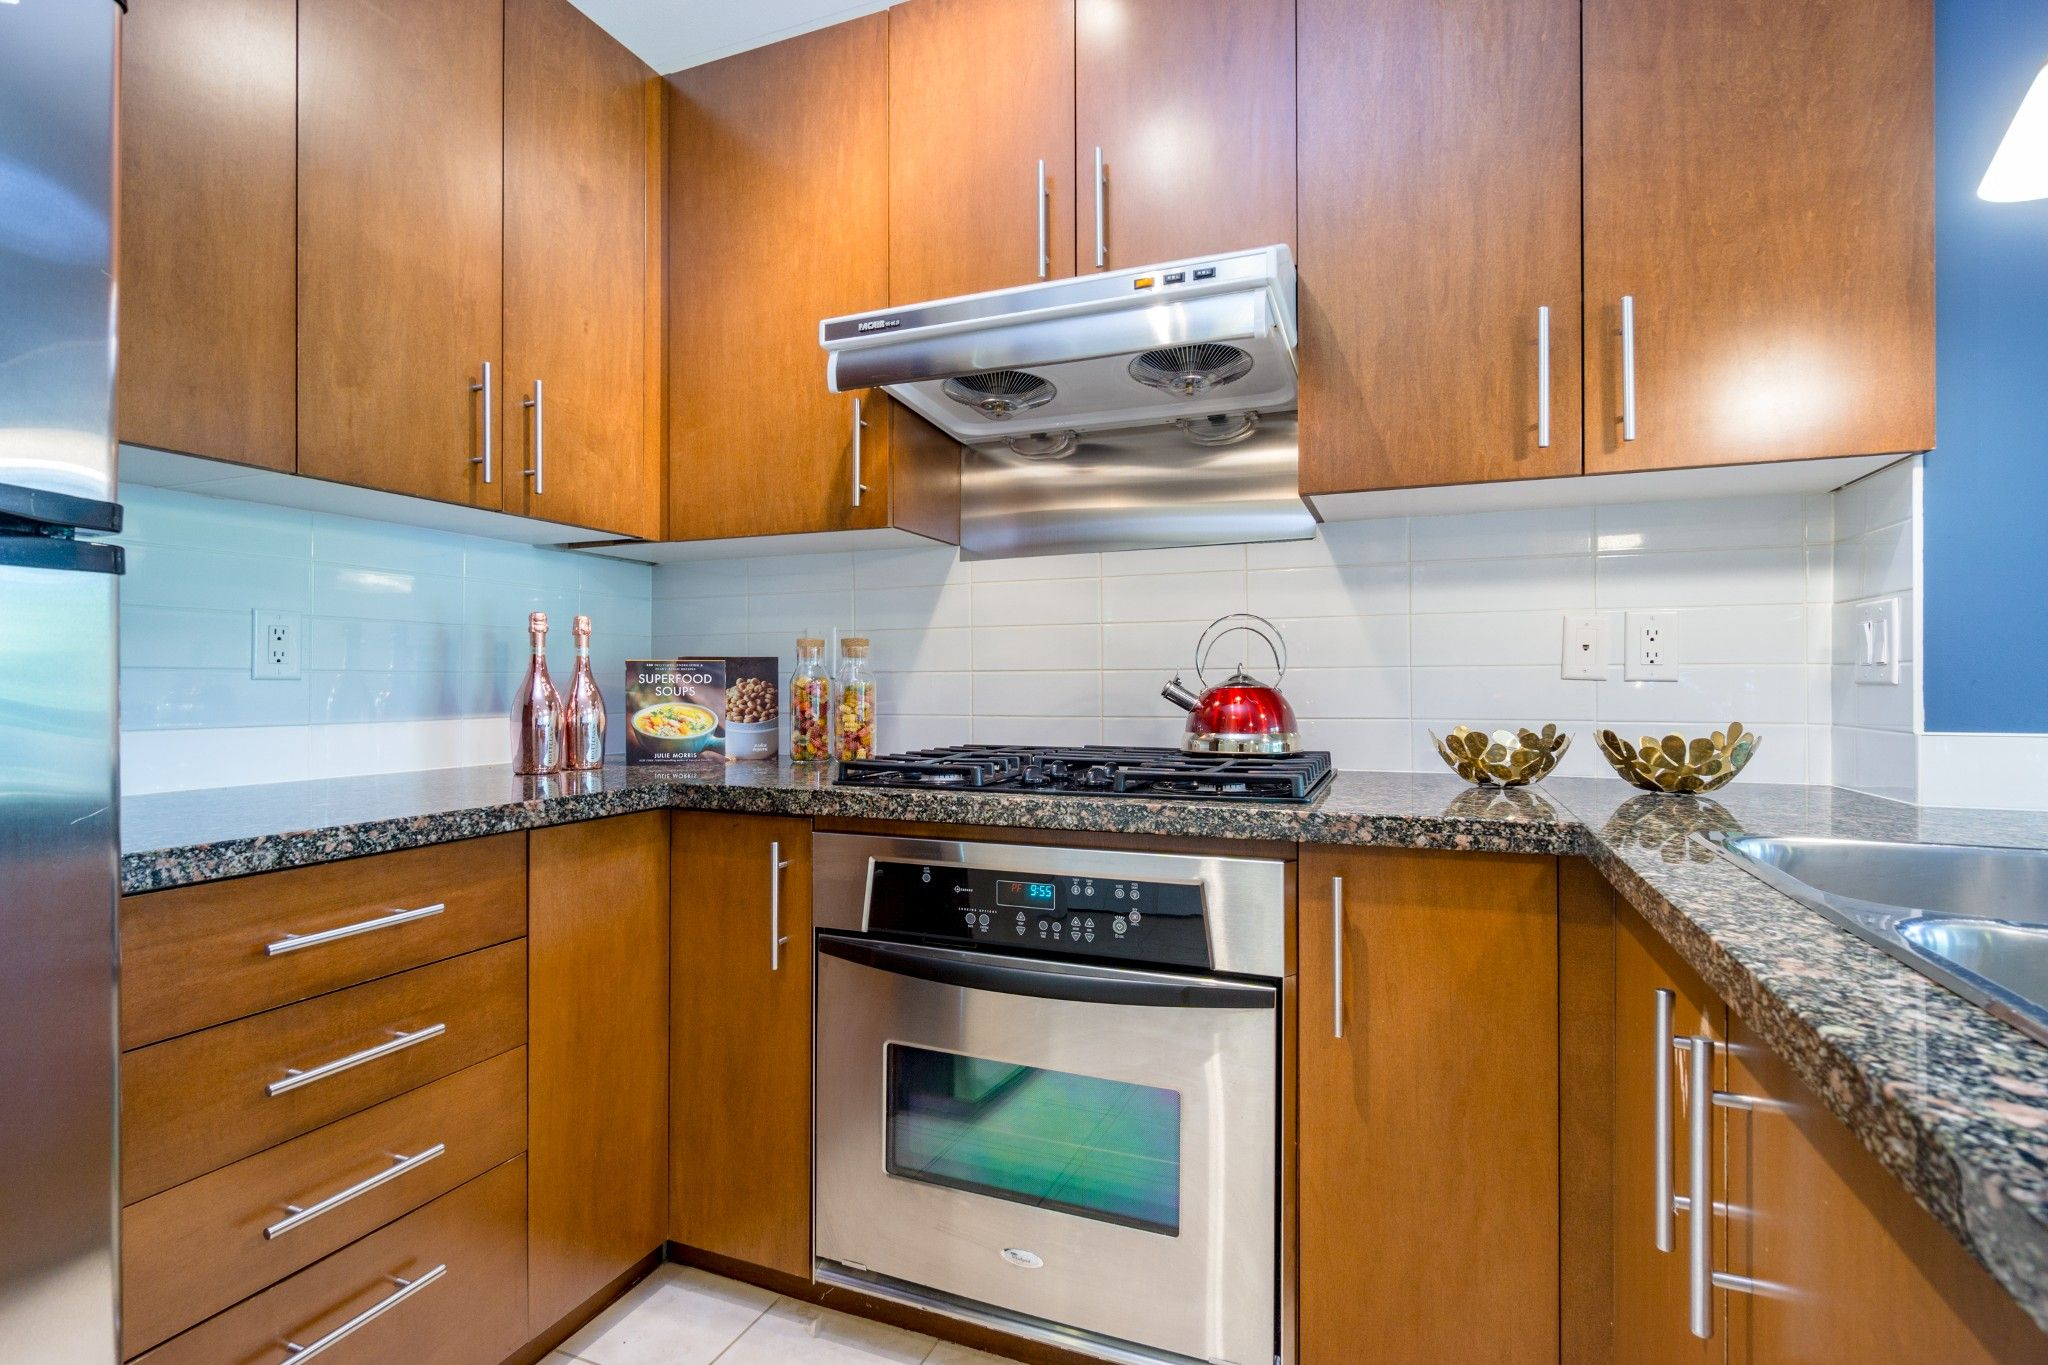 Photo 12: Photos: 208 3551 FOSTER Avenue in Vancouver: Collingwood VE Condo for sale (Vancouver East)  : MLS®# R2291555